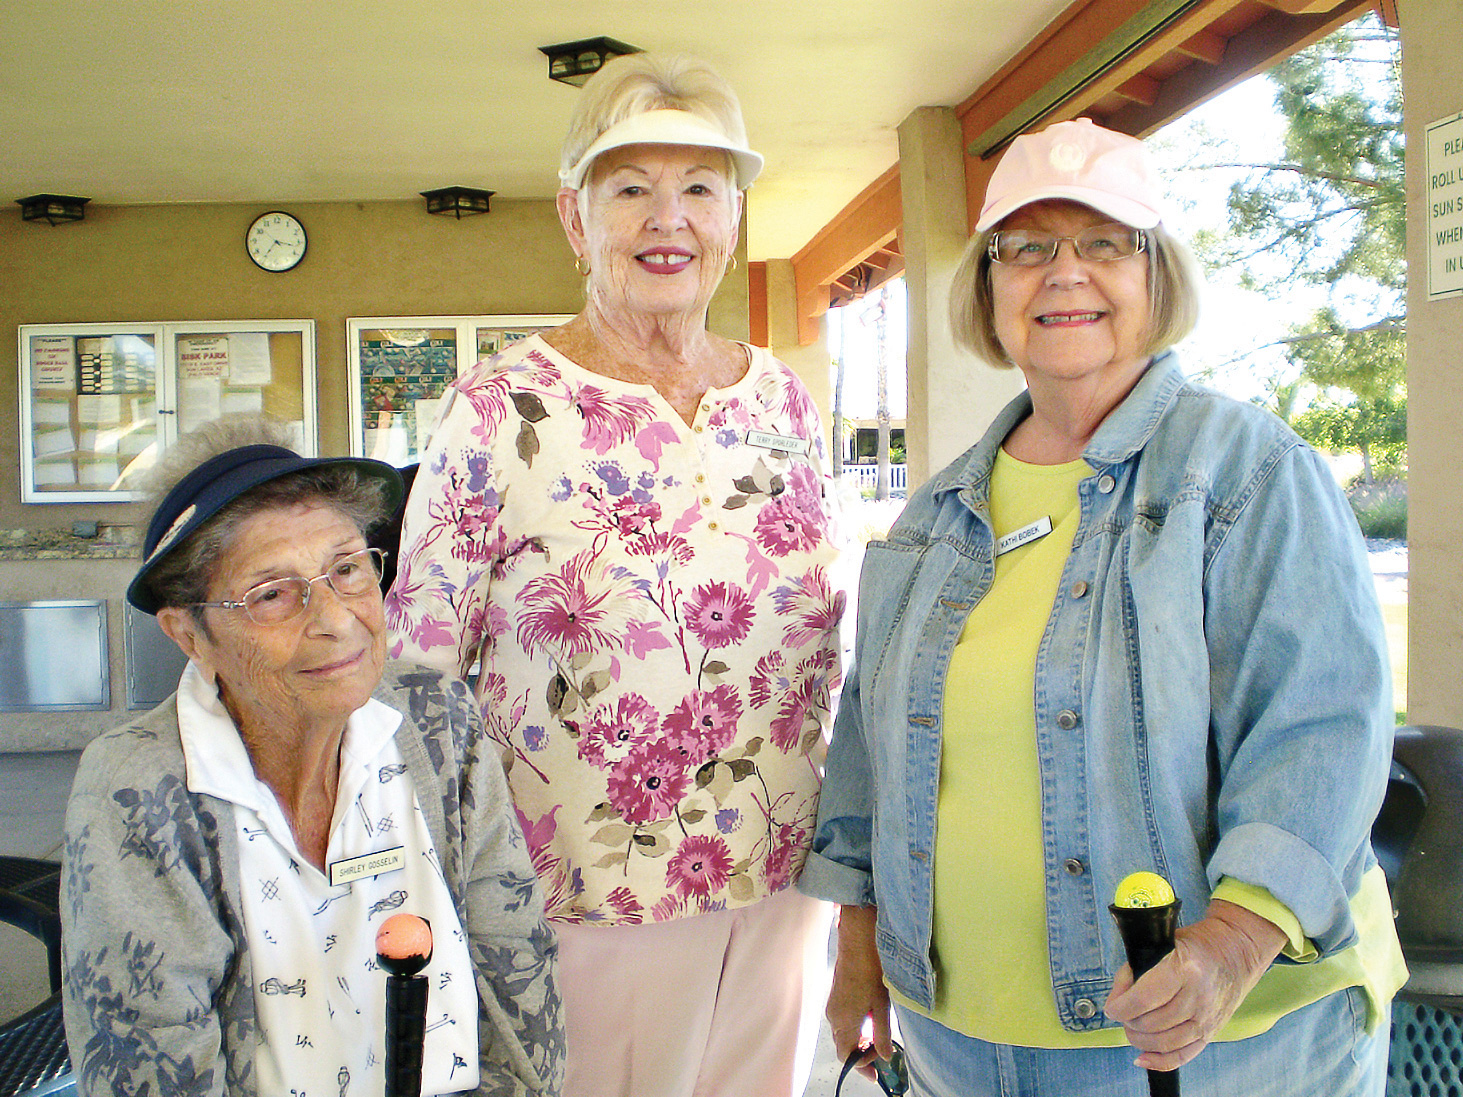 Pictured (left to right): Shirley Goselin, Terry Sporleder, and Kathi Bobek